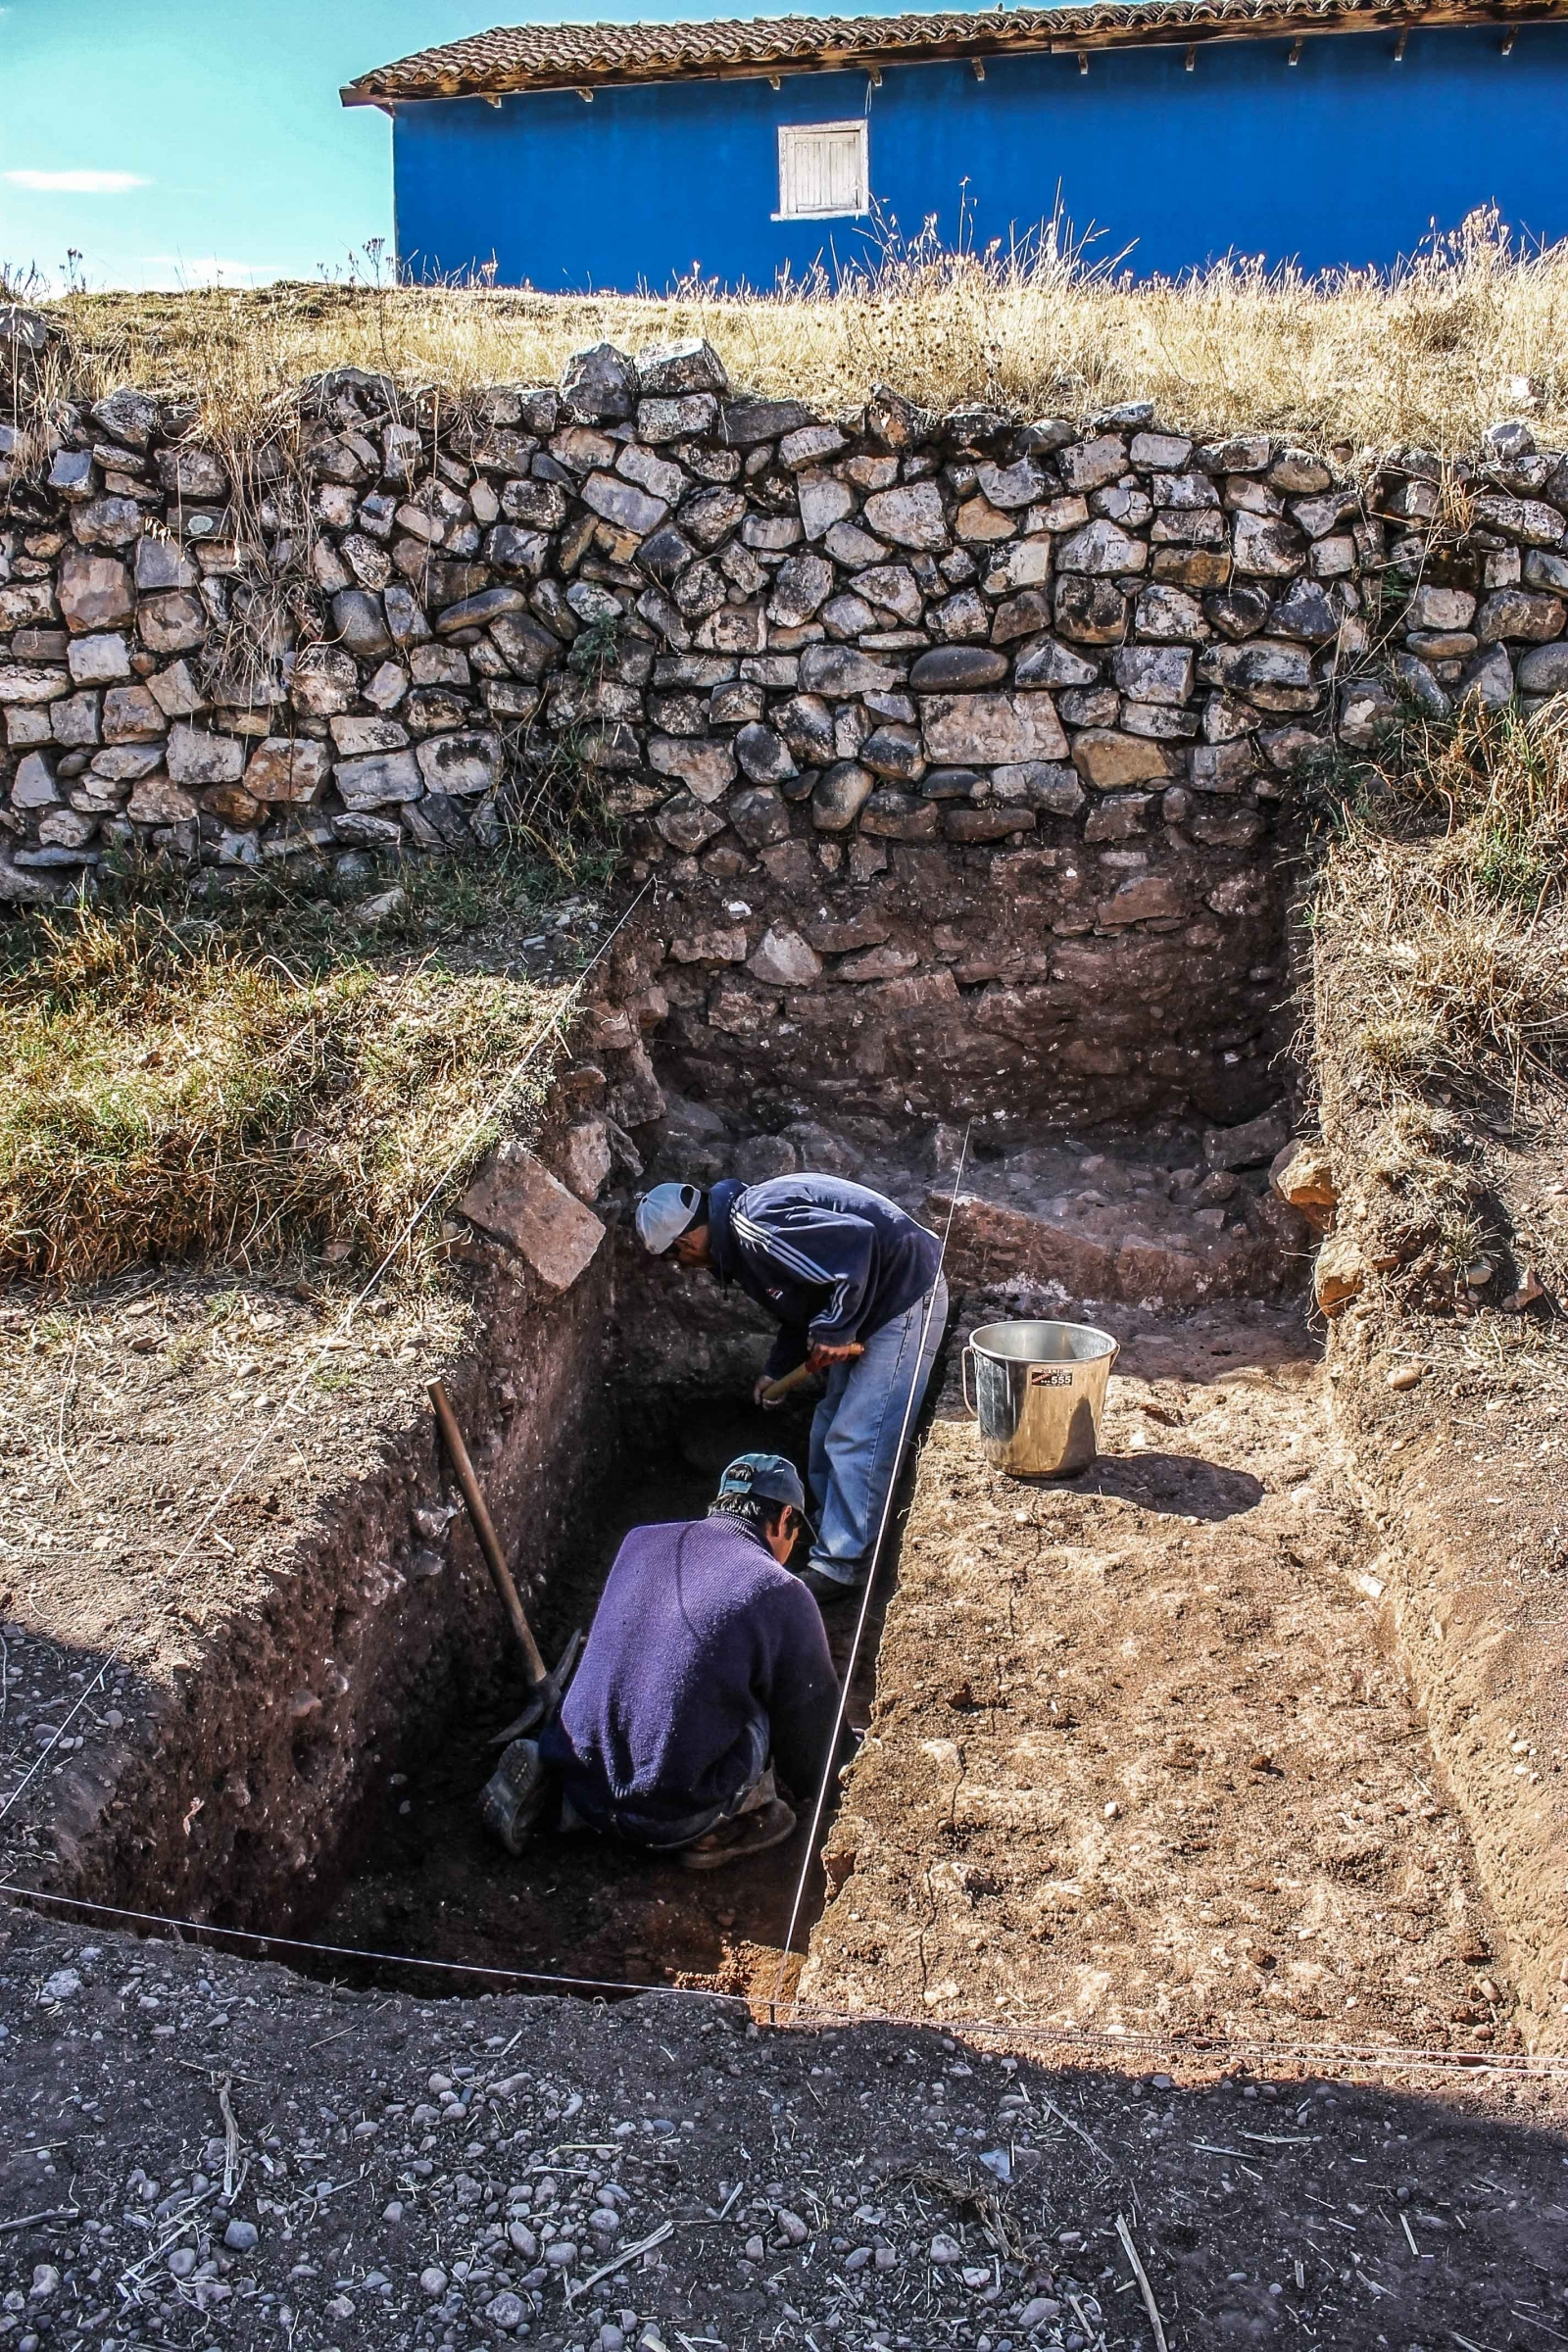 Peru state archaeologists digging near the remains of an ushnu stone ceremonial platform found in the city of Jauja